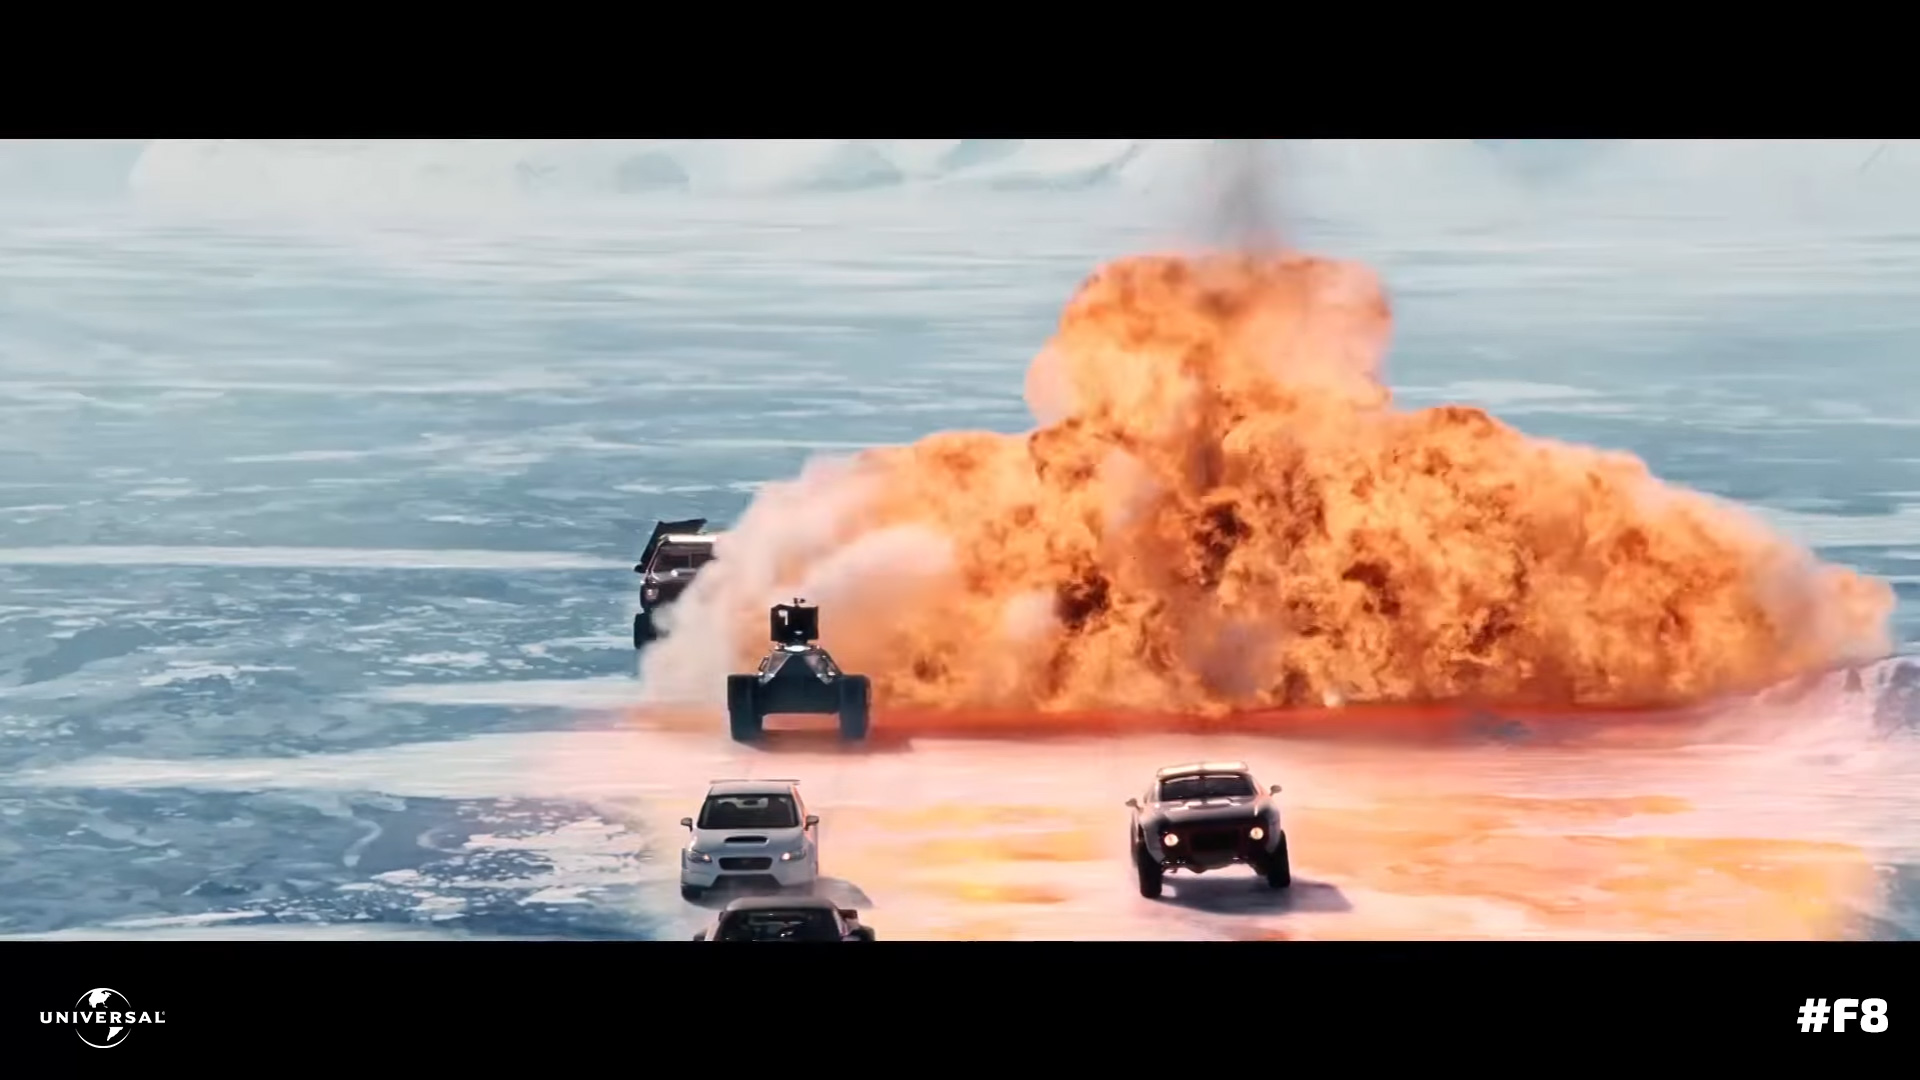 Fast and furious 8 trailer released hd shots gallery - Furious 8 wallpaper ...